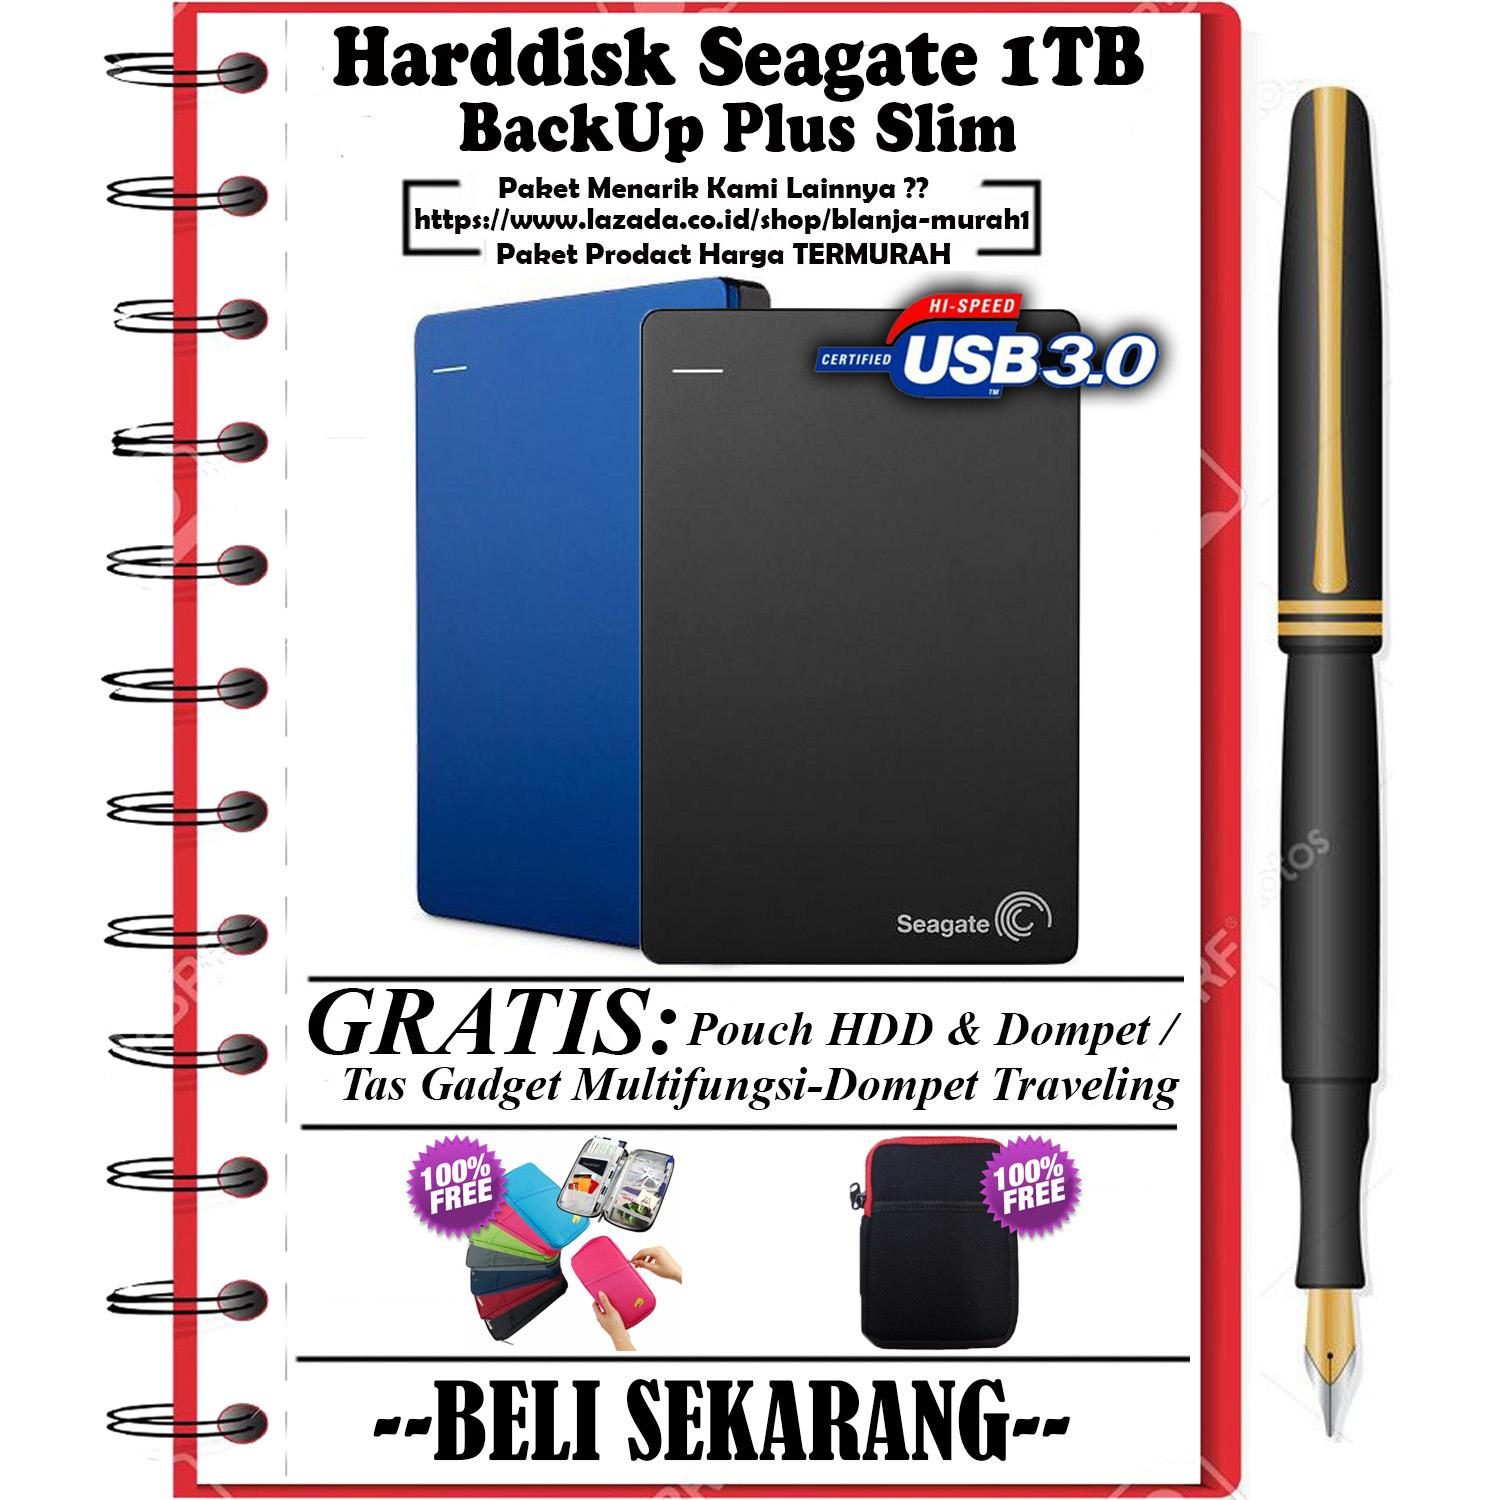 Seagate Backup Plus Slim 1TB - HDD - HD - Hardisk External 2.5 - GRATIS Pouch Harddisknya dan Gadget Pouch Multi-functional Storage Orgranizier / Dompet Gadget Multifungsi Traveling